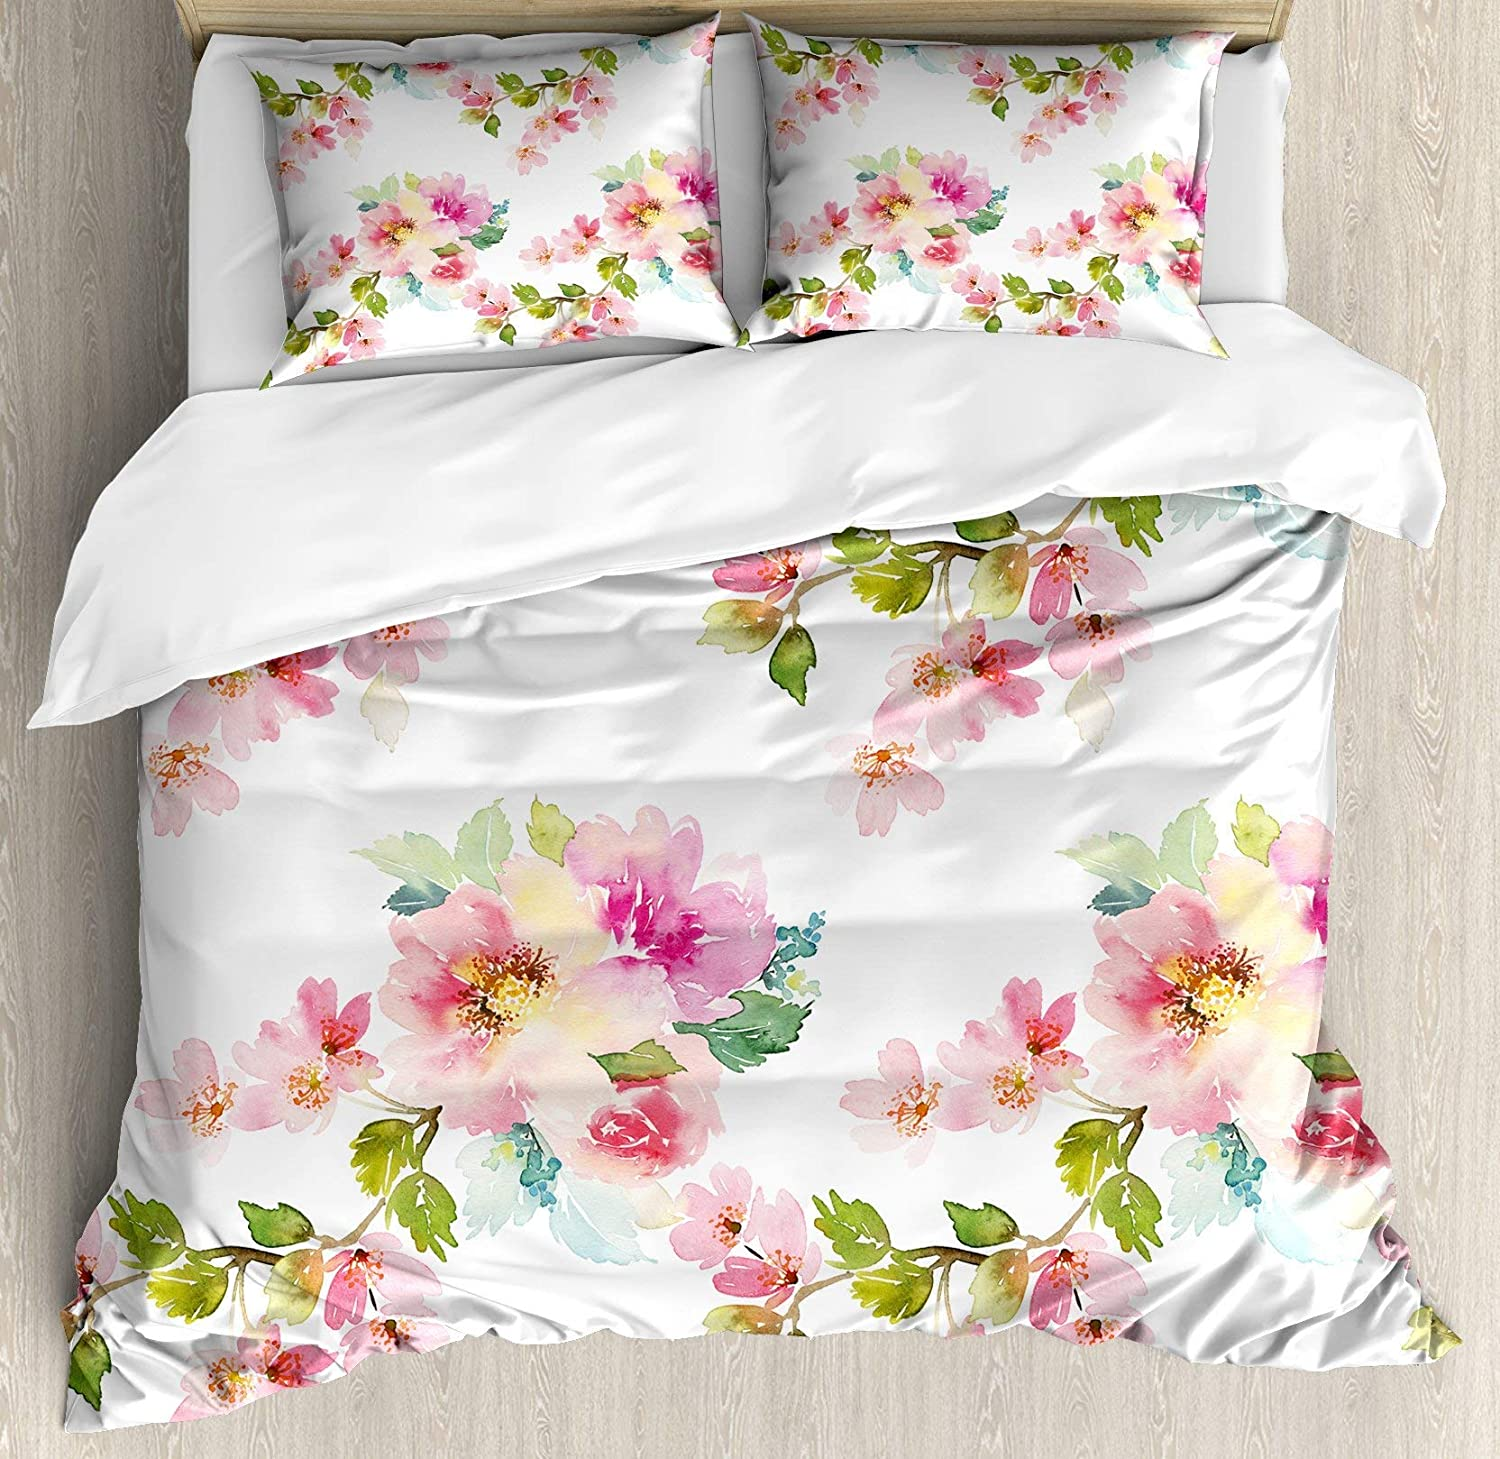 Multi 4 Twin Green 4pc Bedding Set Twin Size, Three Vibrant Butterflies on White Backdrop Magical Spring Nature Floral Lightweight Microfiber Duvet Cover Set, Lime Green Fern Green Black